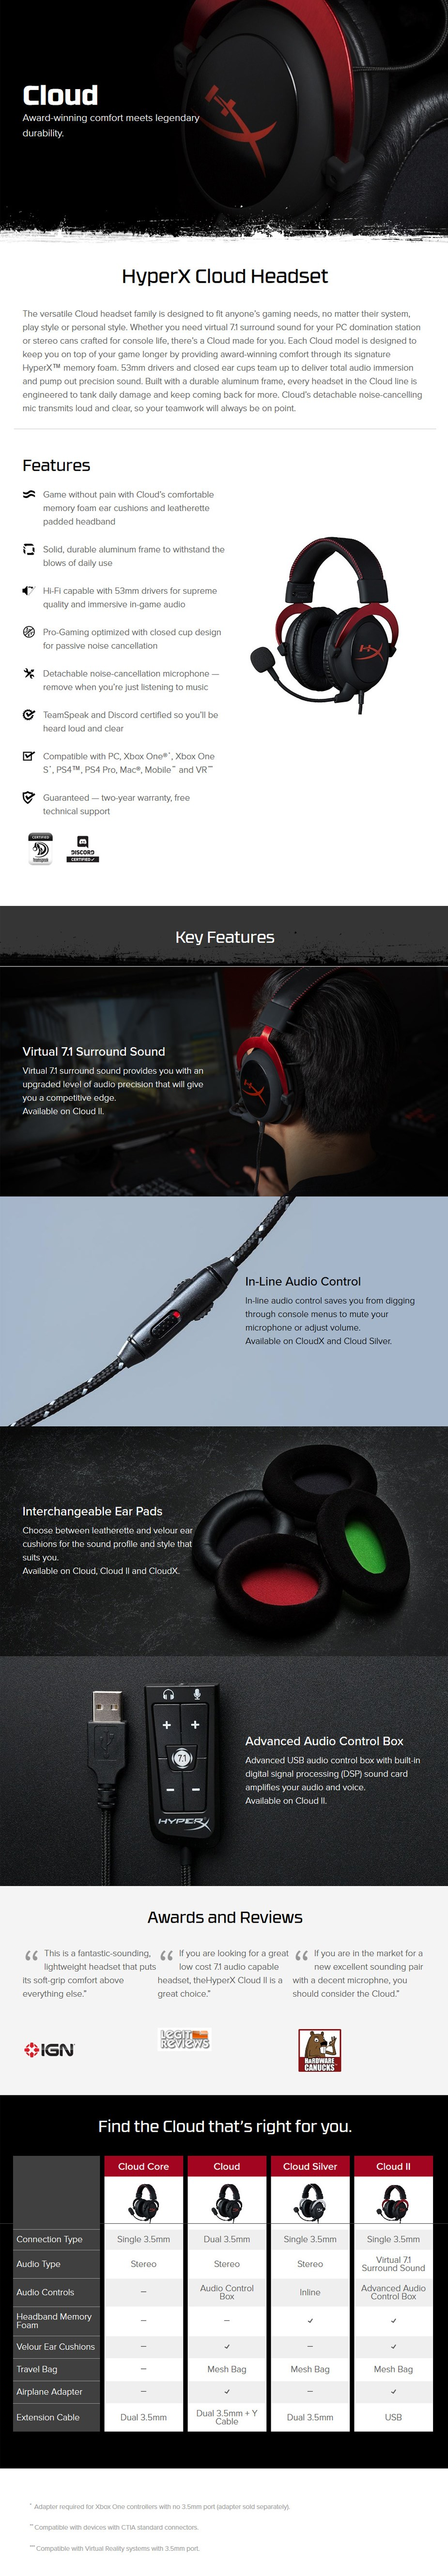 HyperX Cloud II 7.1 Channel USB Gaming Headset - Black/Red Display Overview 1